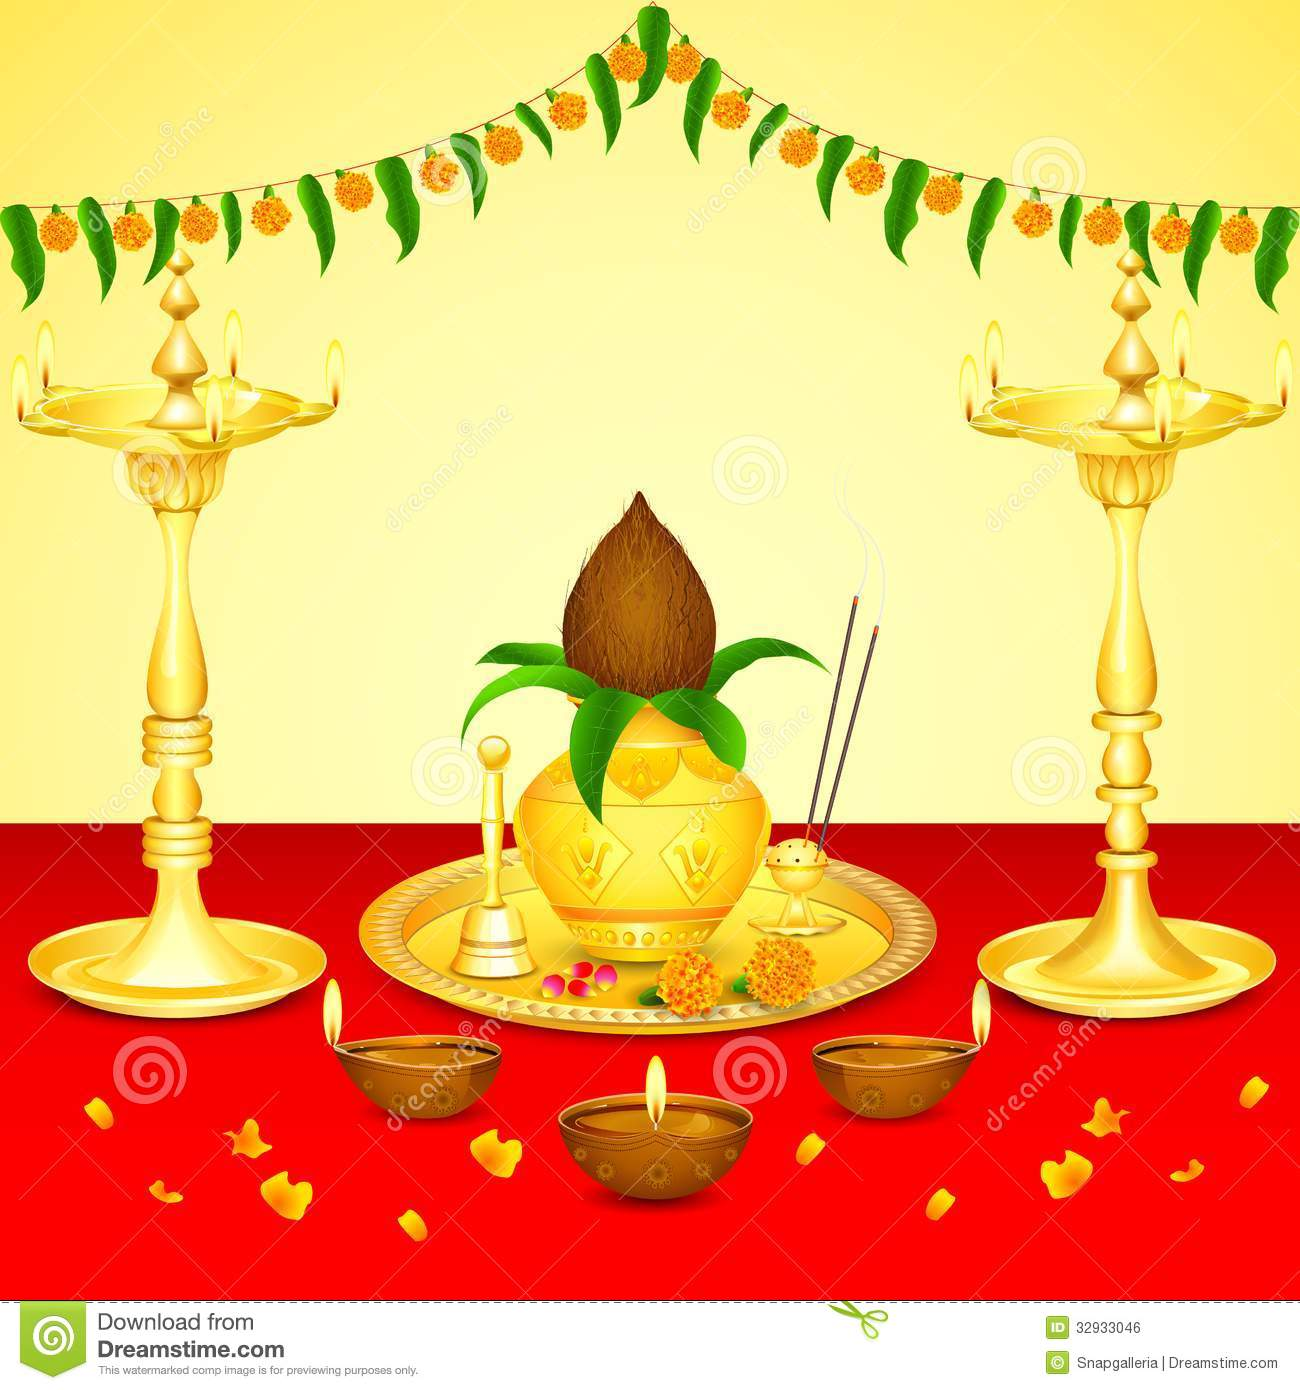 Puja clipart.